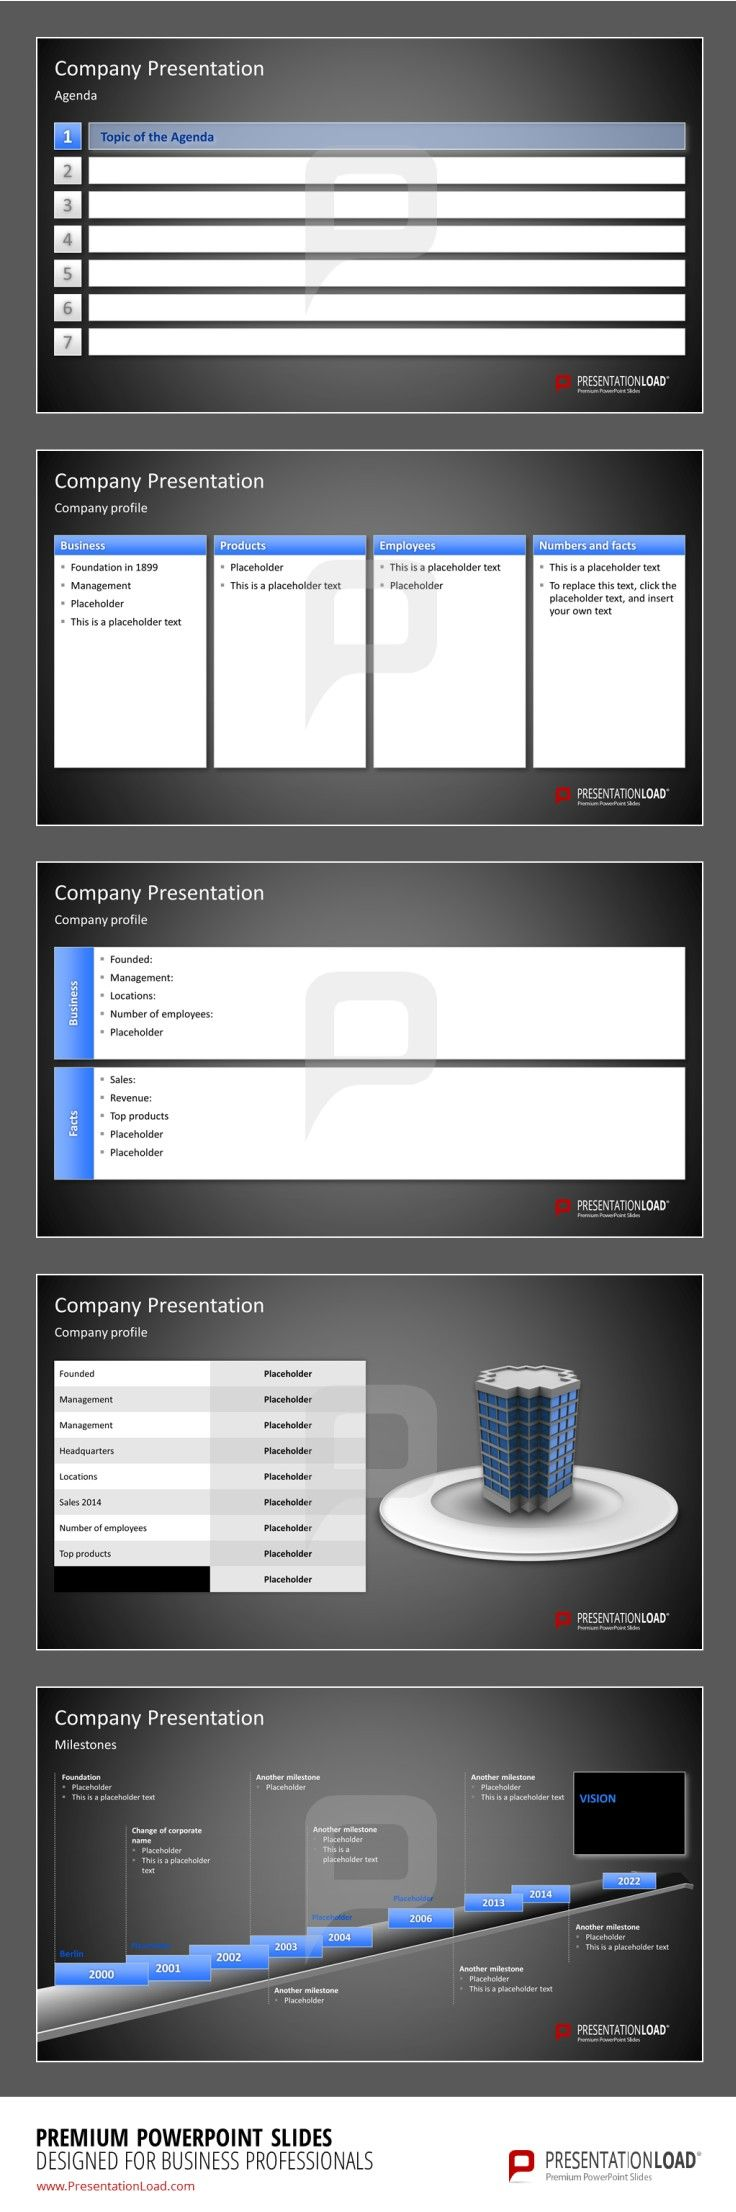 72 best business planning powerpoint templates images on company presentation basic present your company professionally with pre designed powerpoint templates and save time and money create a well rounded toneelgroepblik Gallery